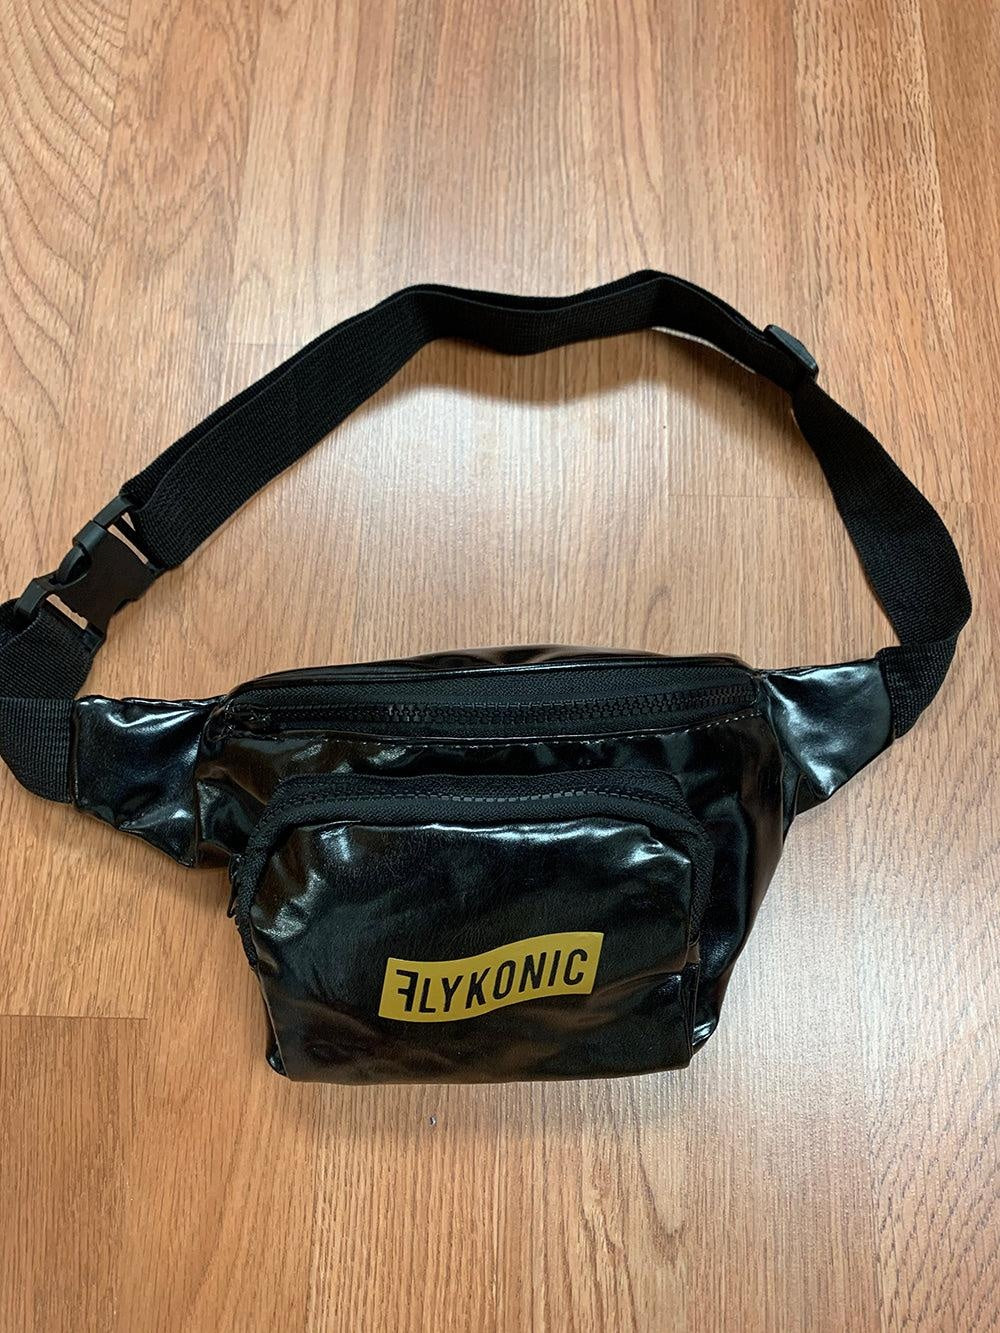 Flykonic Fanny Pack - Black with Gold Print